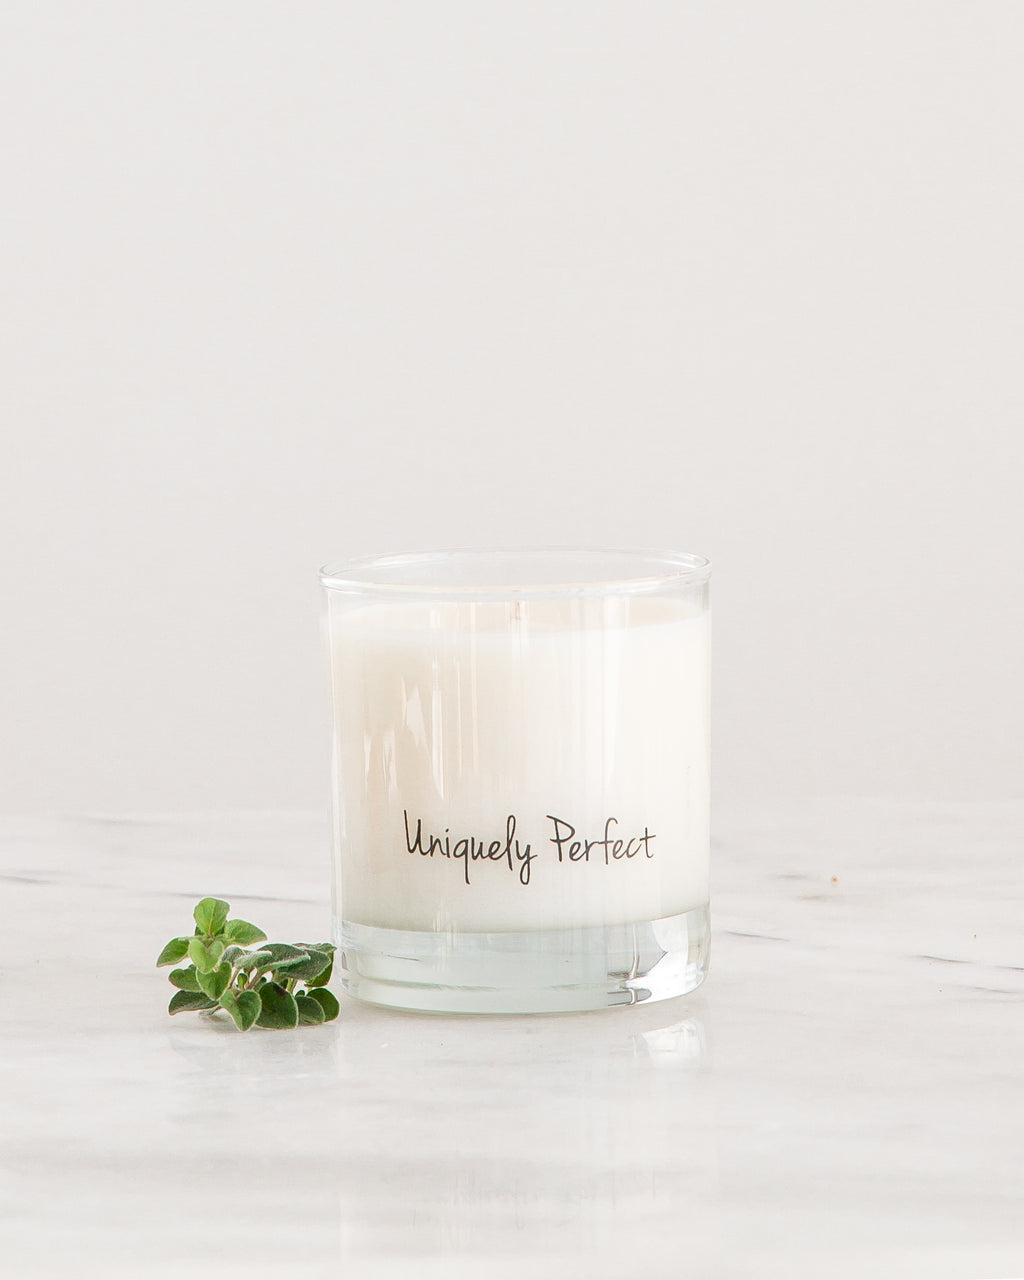 Uniquely Perfect Soy Candle